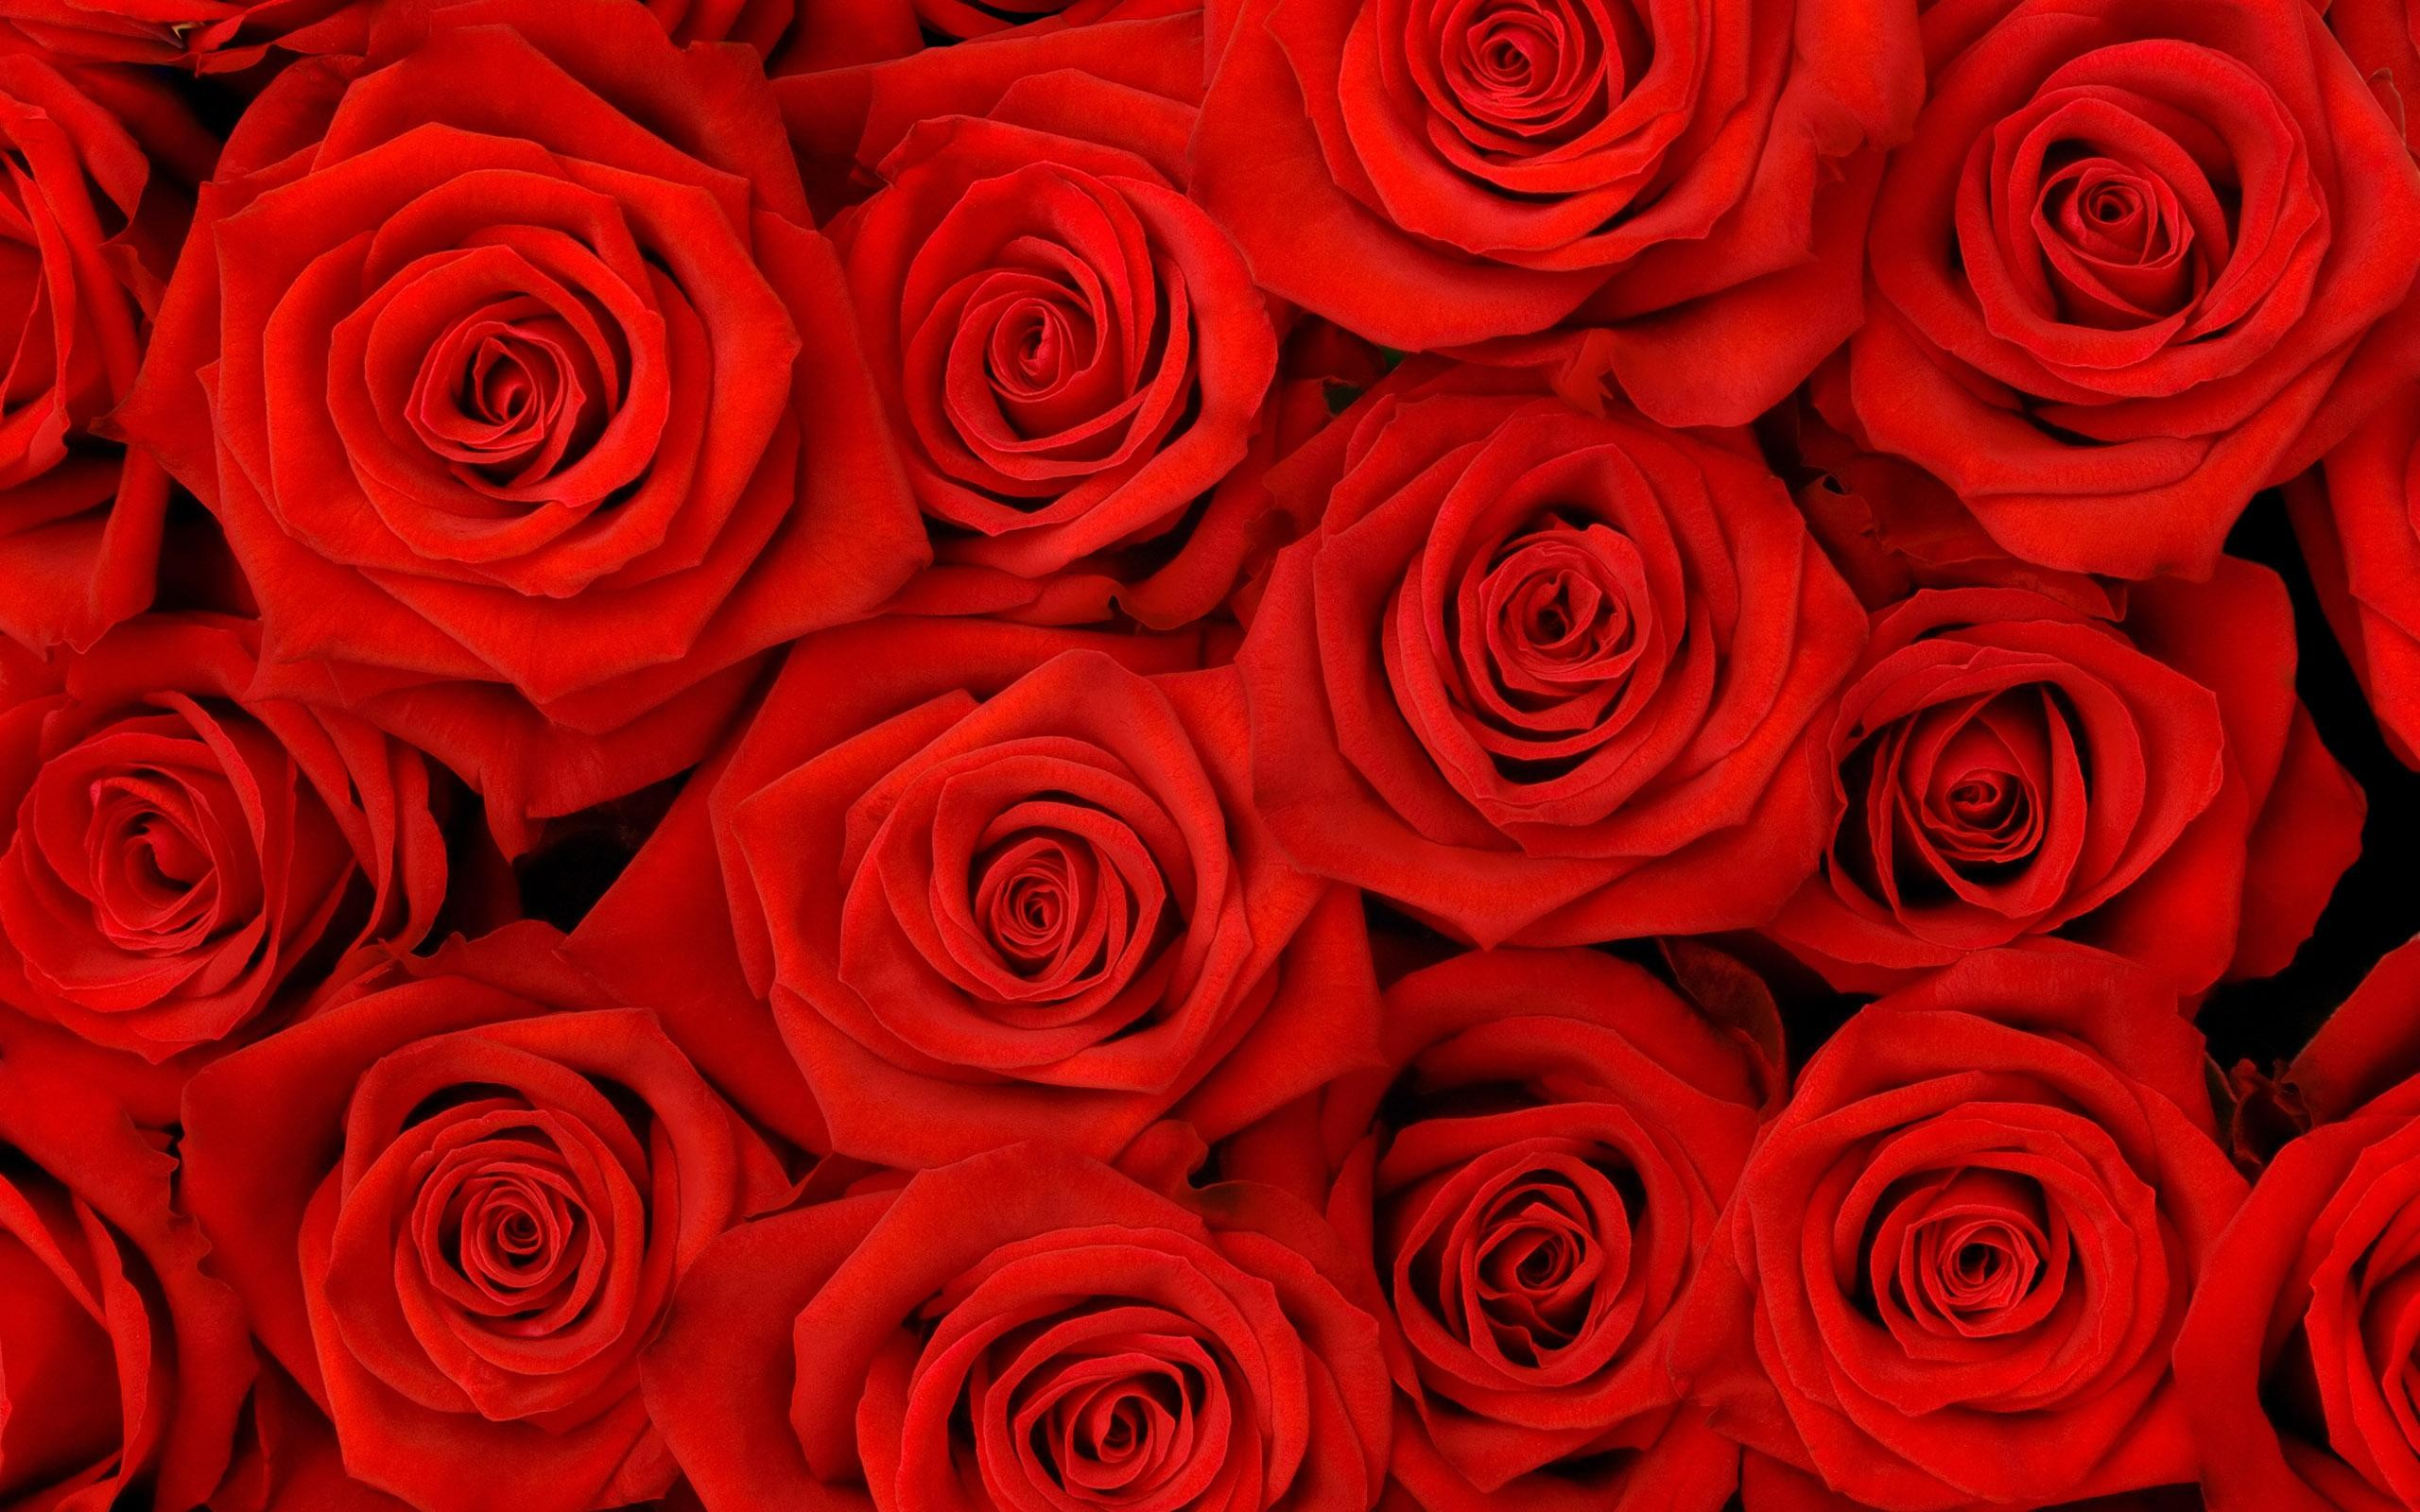 red roses background 36